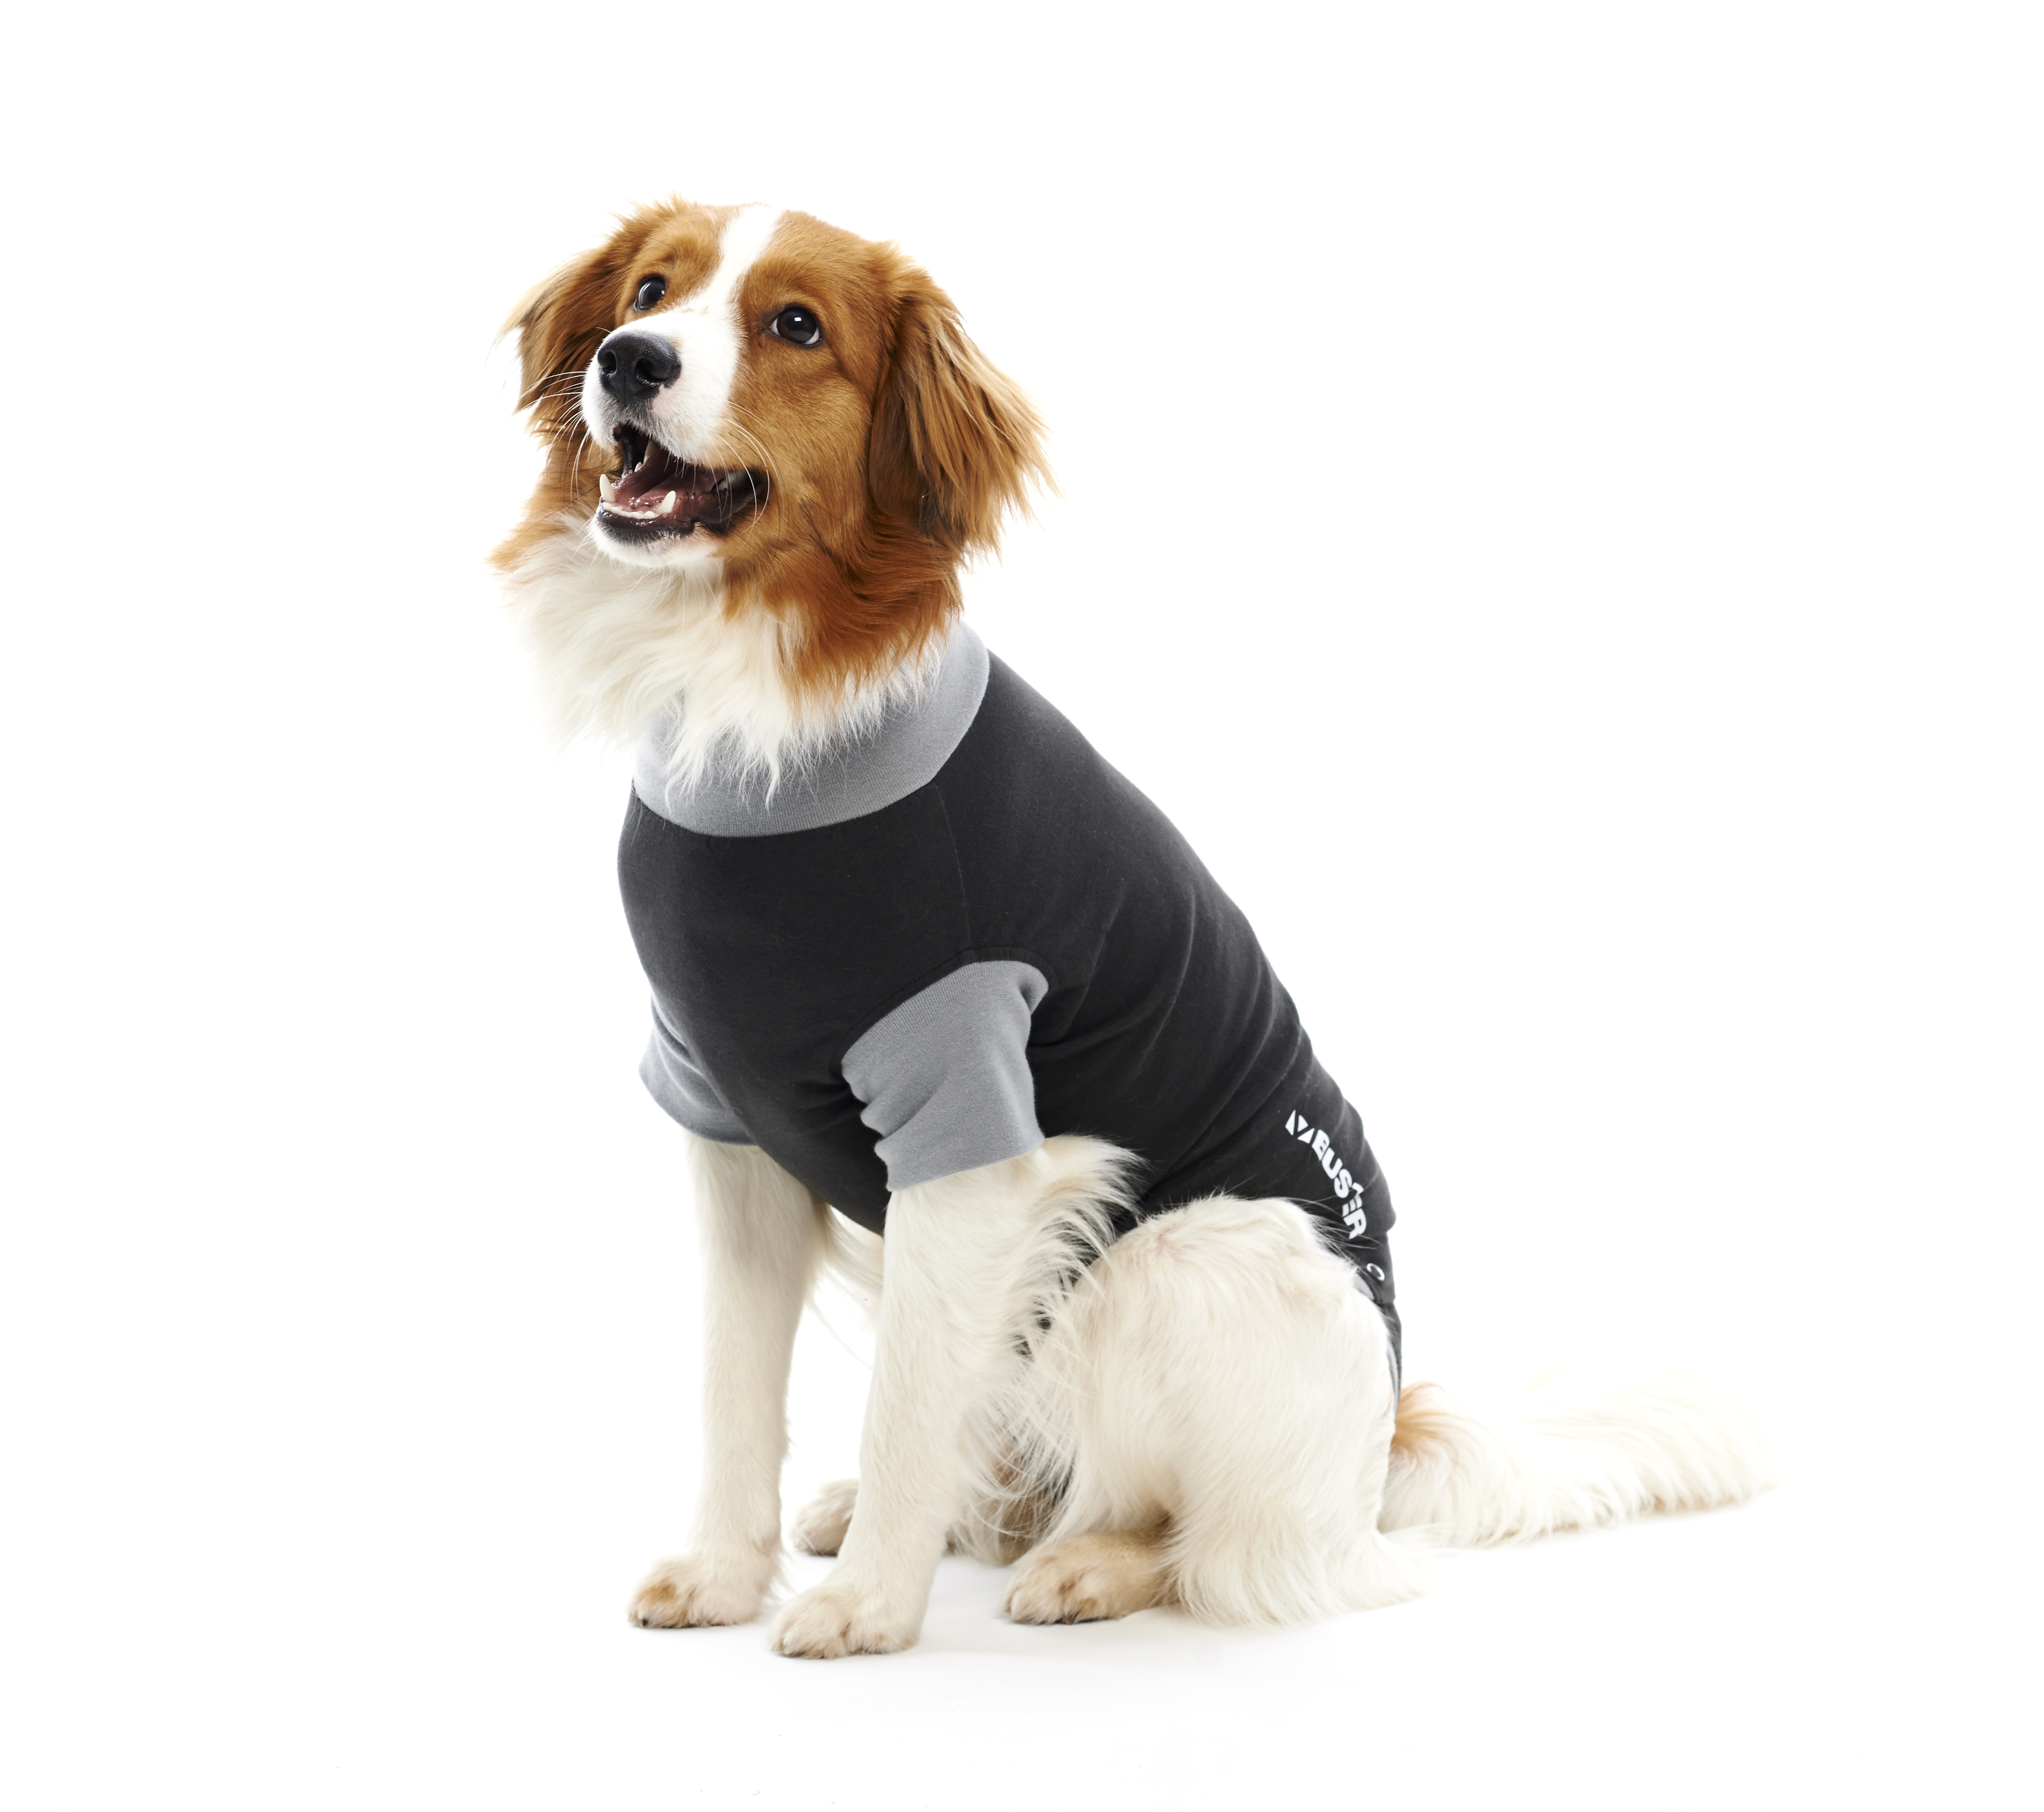 BUSTER Body Suit Classic for dogs, black/grey, 76 cm, XXXL